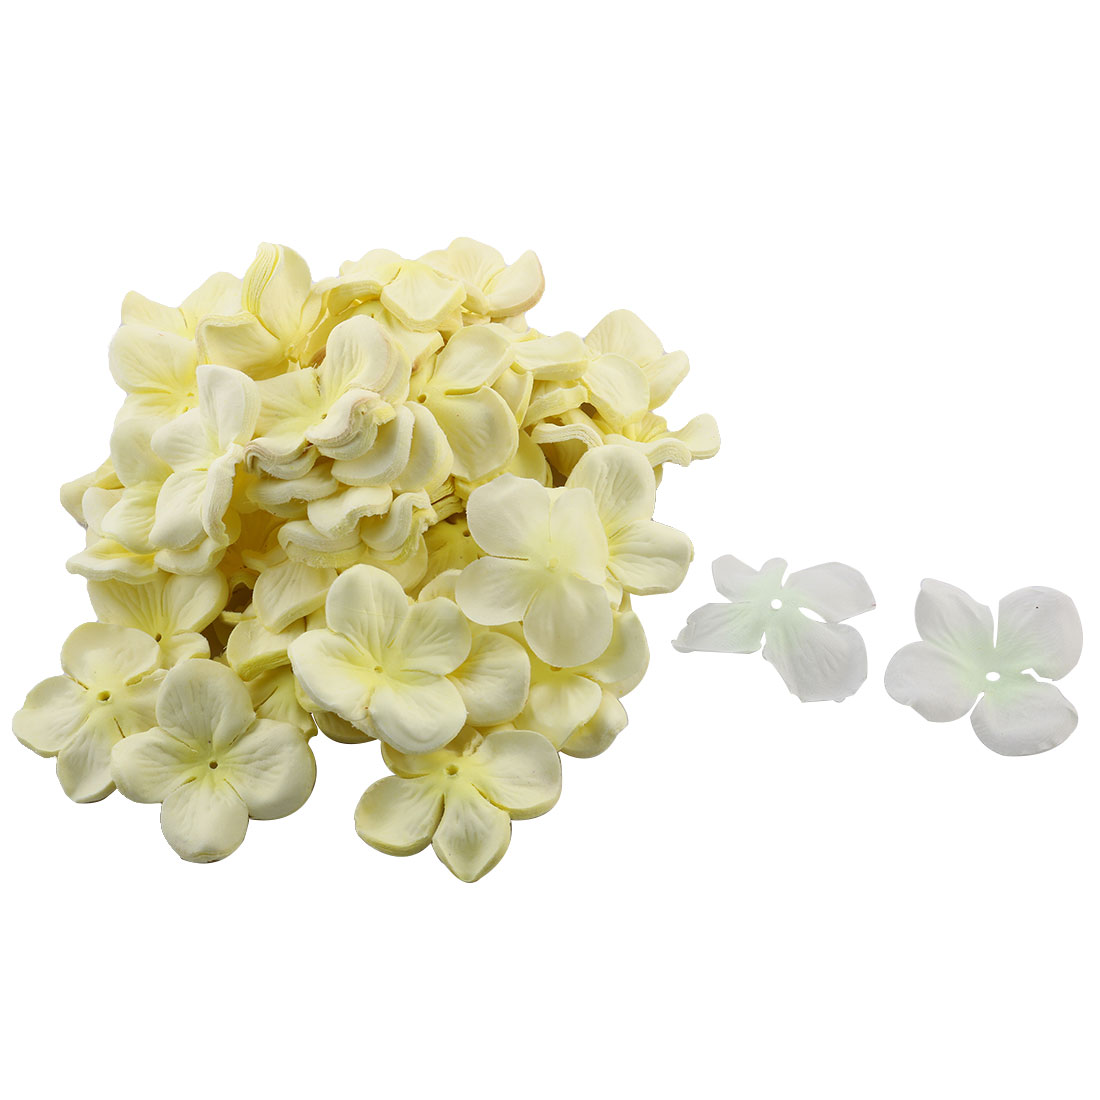 Wedding Party Bridal Table Fabric Flower Petal Decorations 1200 PCS